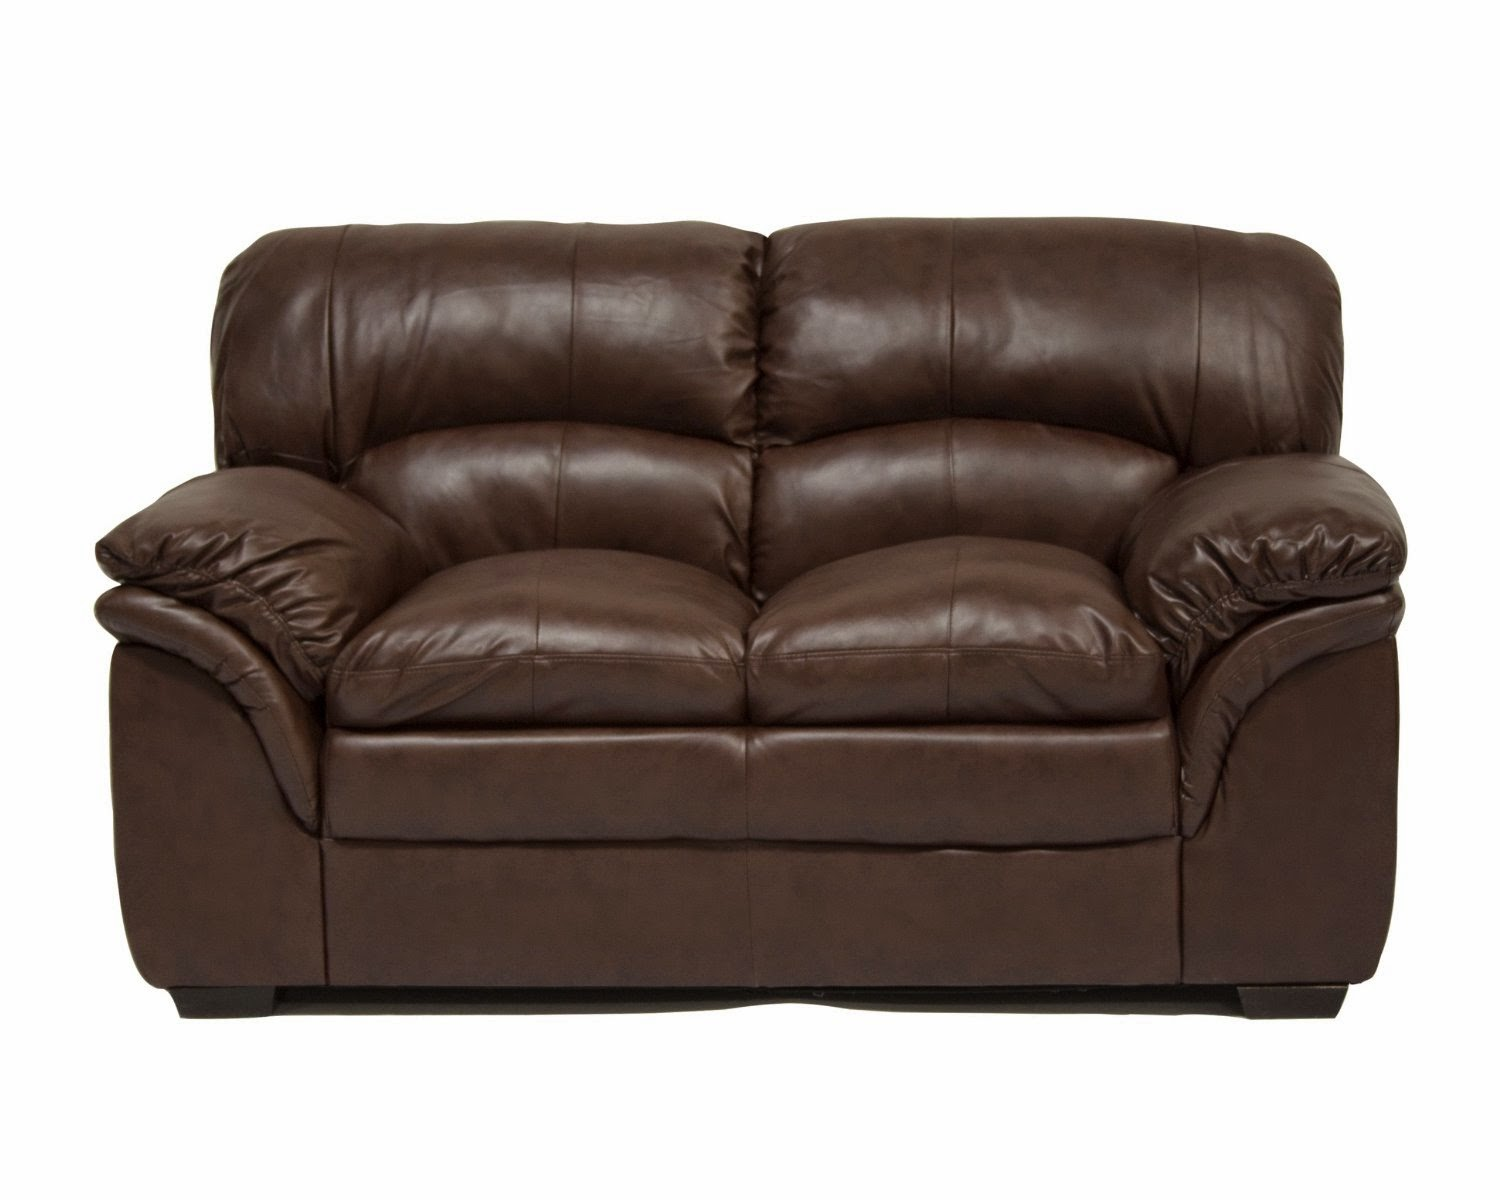 Ac Pacific Brown 2 Seater Leather Recliner Sofa Uk